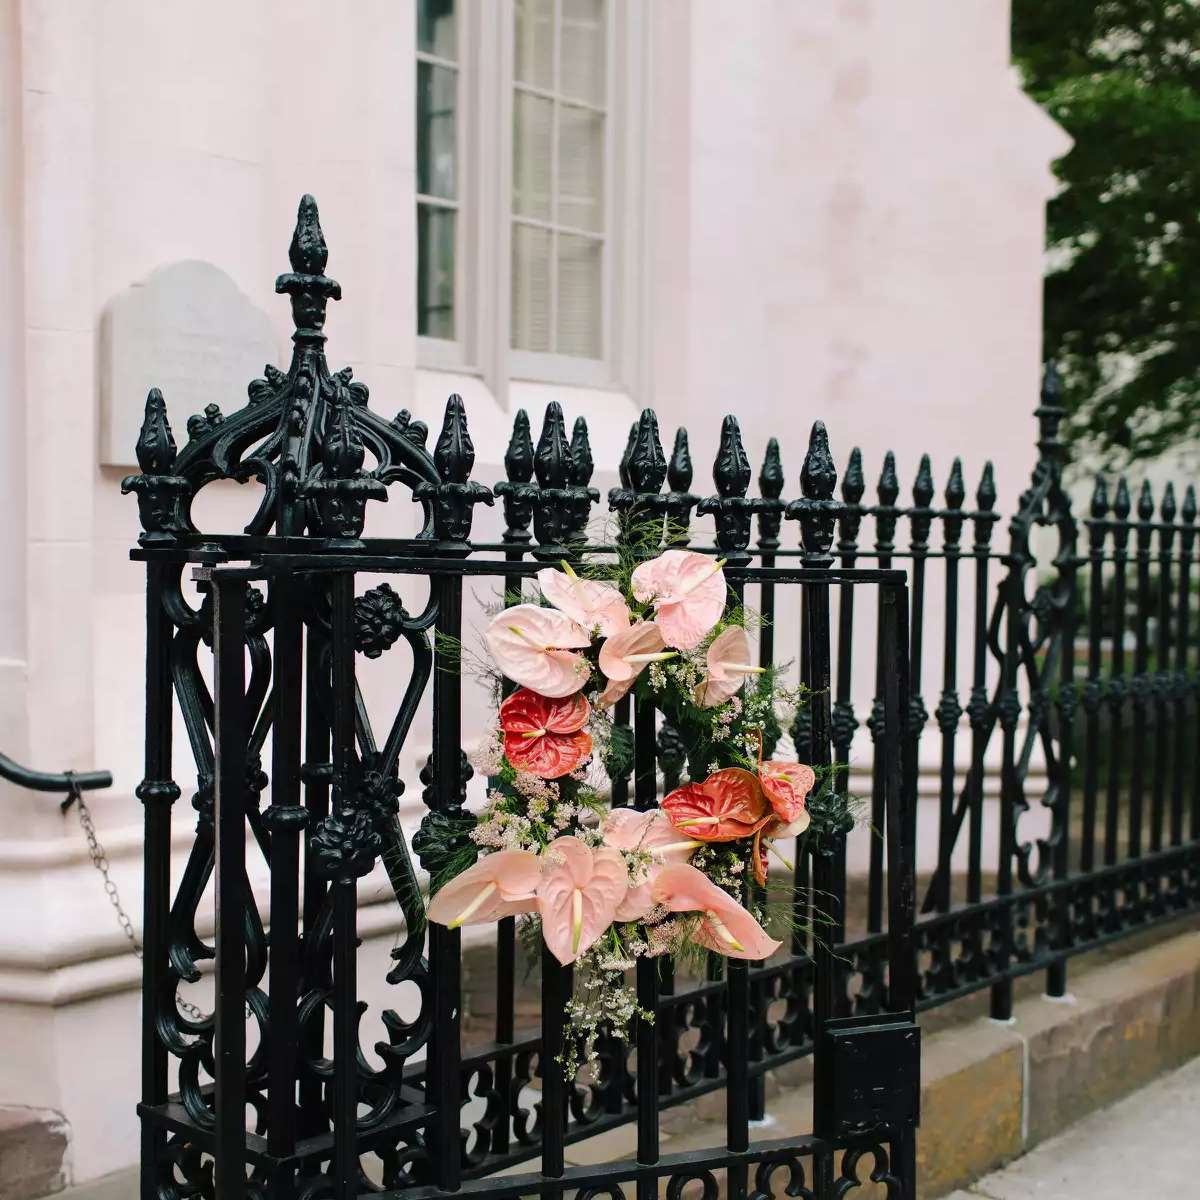 church gate with florals